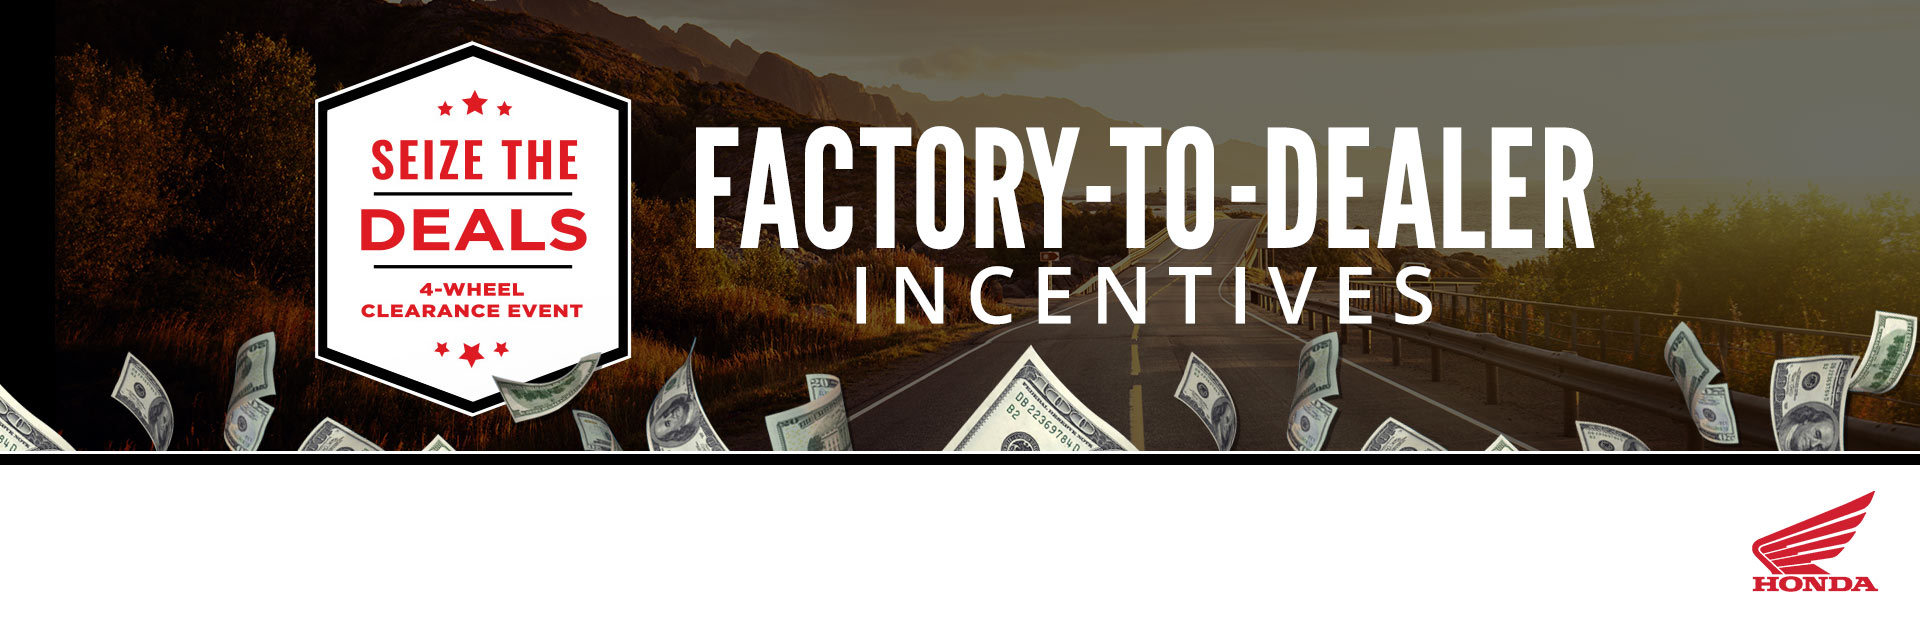 ... Factory To Dealer Incentives